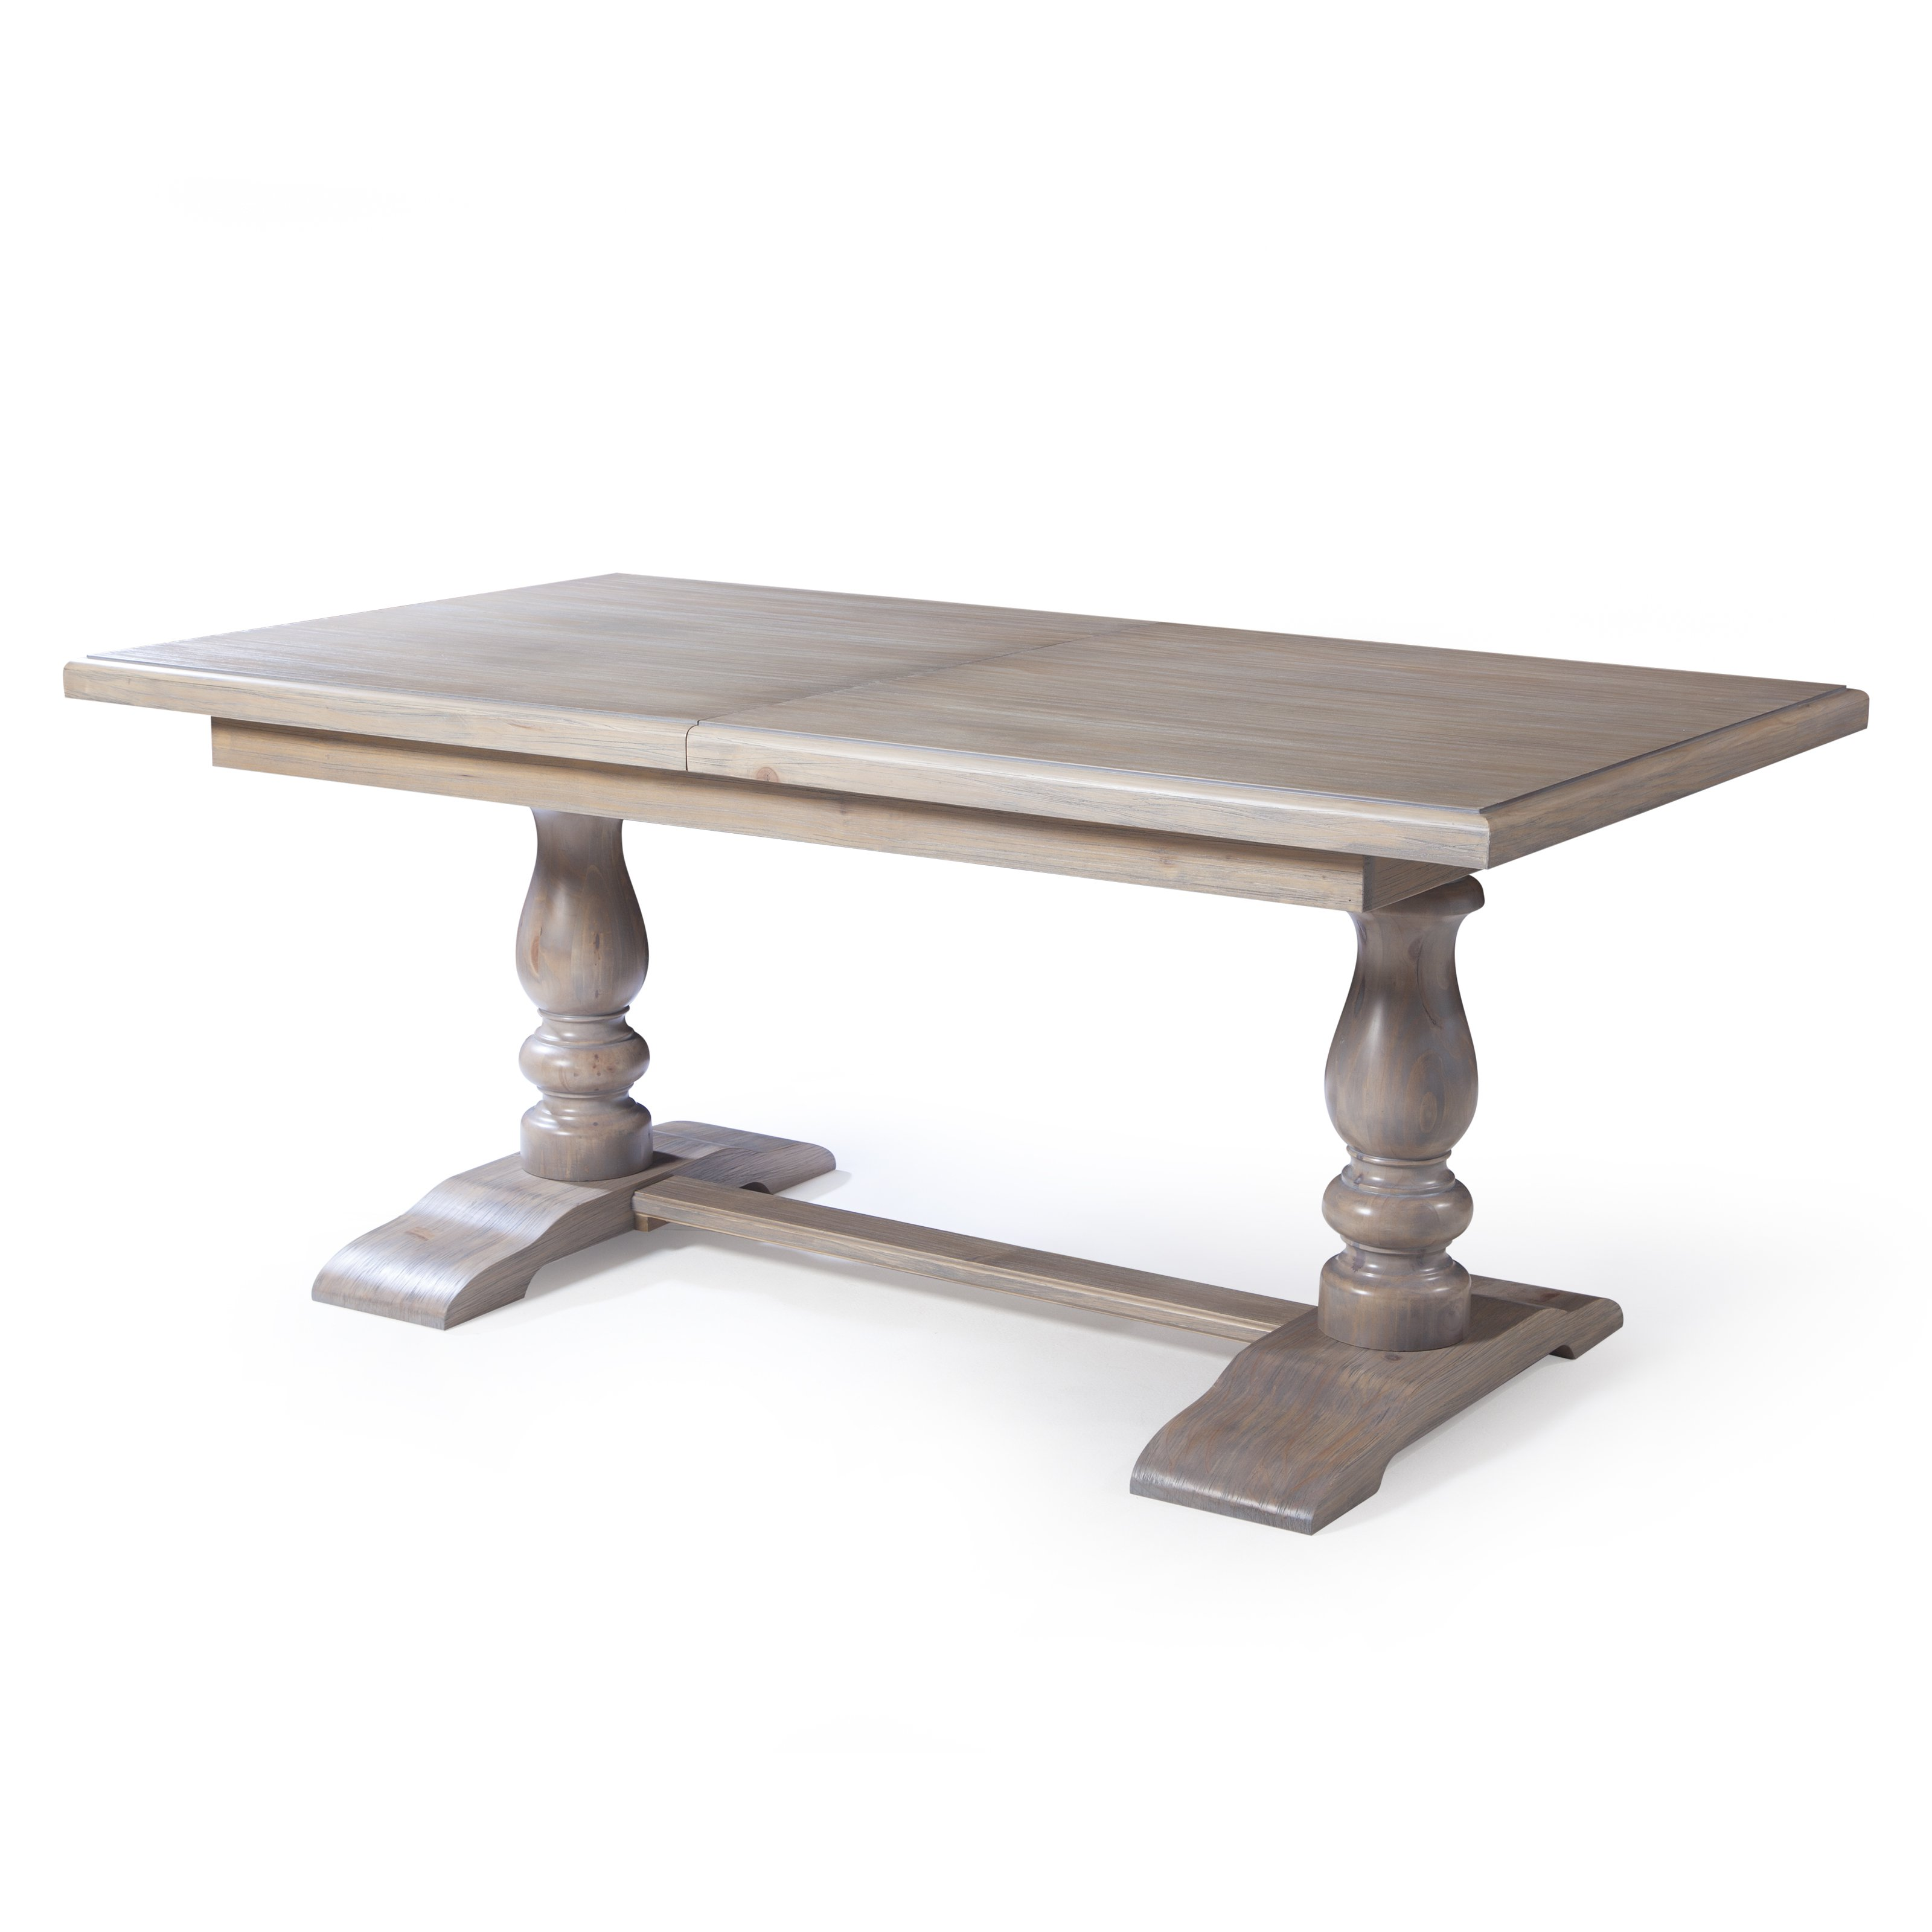 trestle table belham living kennedy trestle extension dining table | hayneedle QIJSRMT